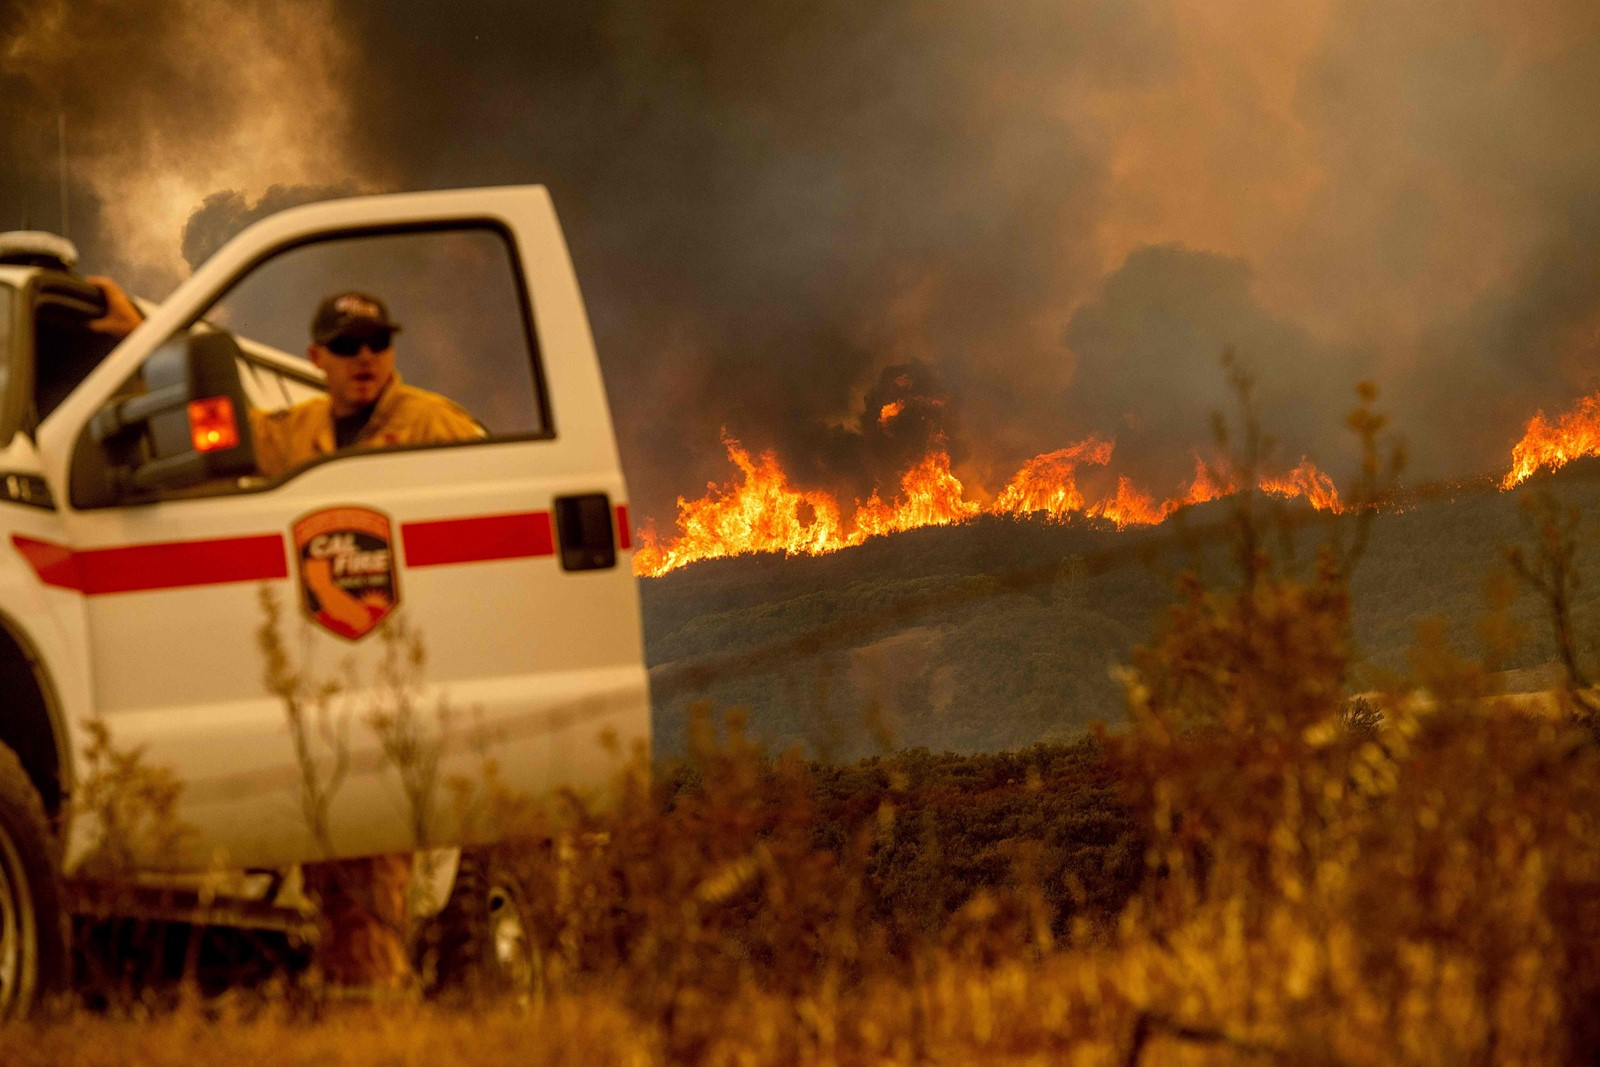 Battalion Chief Matt Sully directs firefighting operations near Clearlake Oaks, California, on Sunday as the Mendocino Complex fire grew to 266,000 acres. It's being spread by shifting winds and brittle-dry vegetation. — Photograph: Noah Berger/Agence France-Presse/Getty Images.